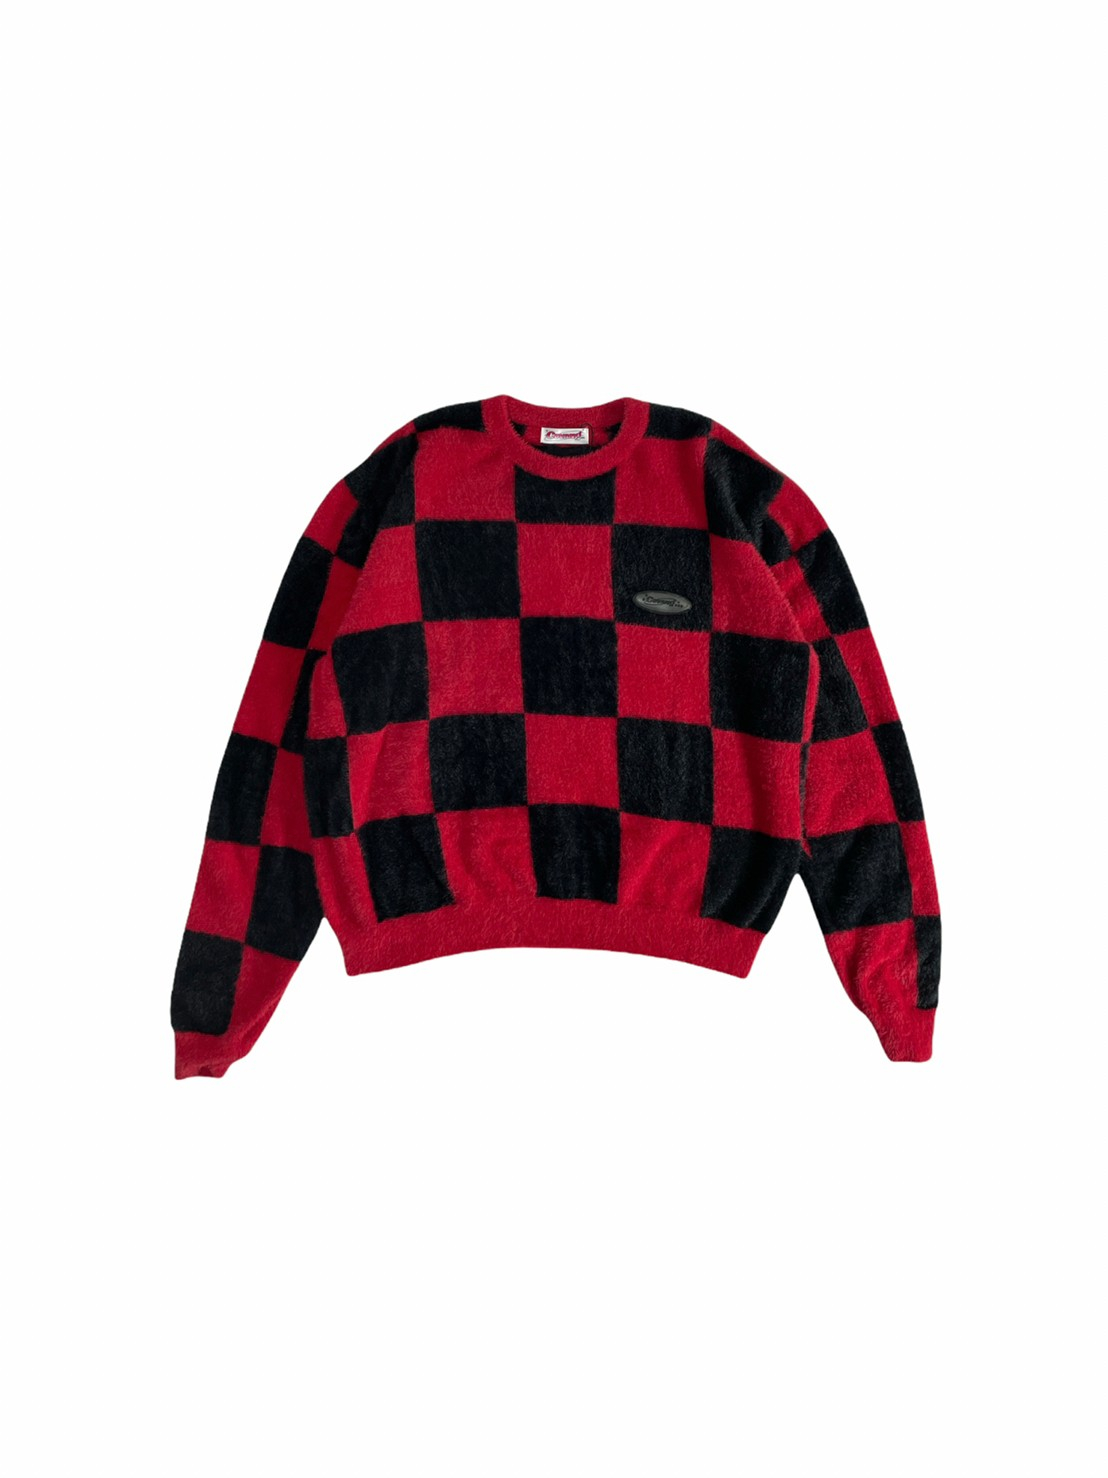 Checkmate Sweater